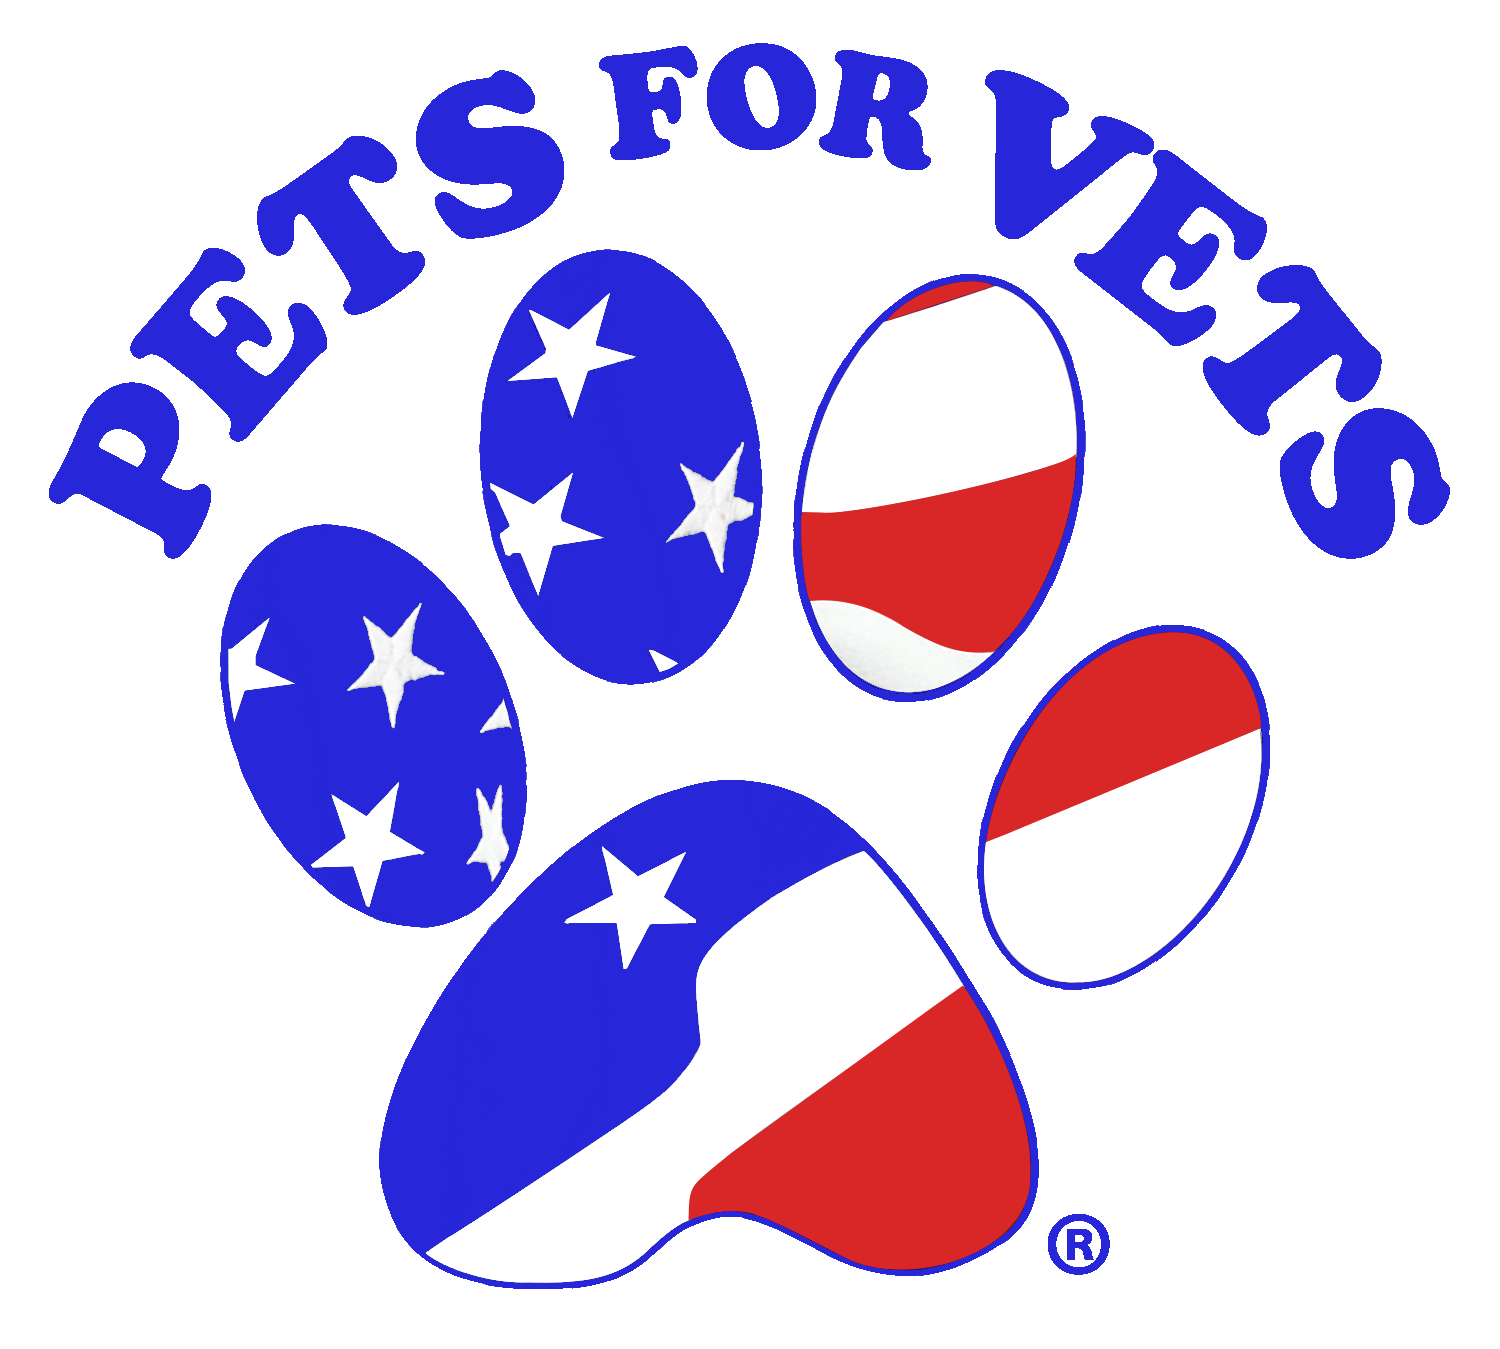 petsforvets-logo-blue-red-desaturated